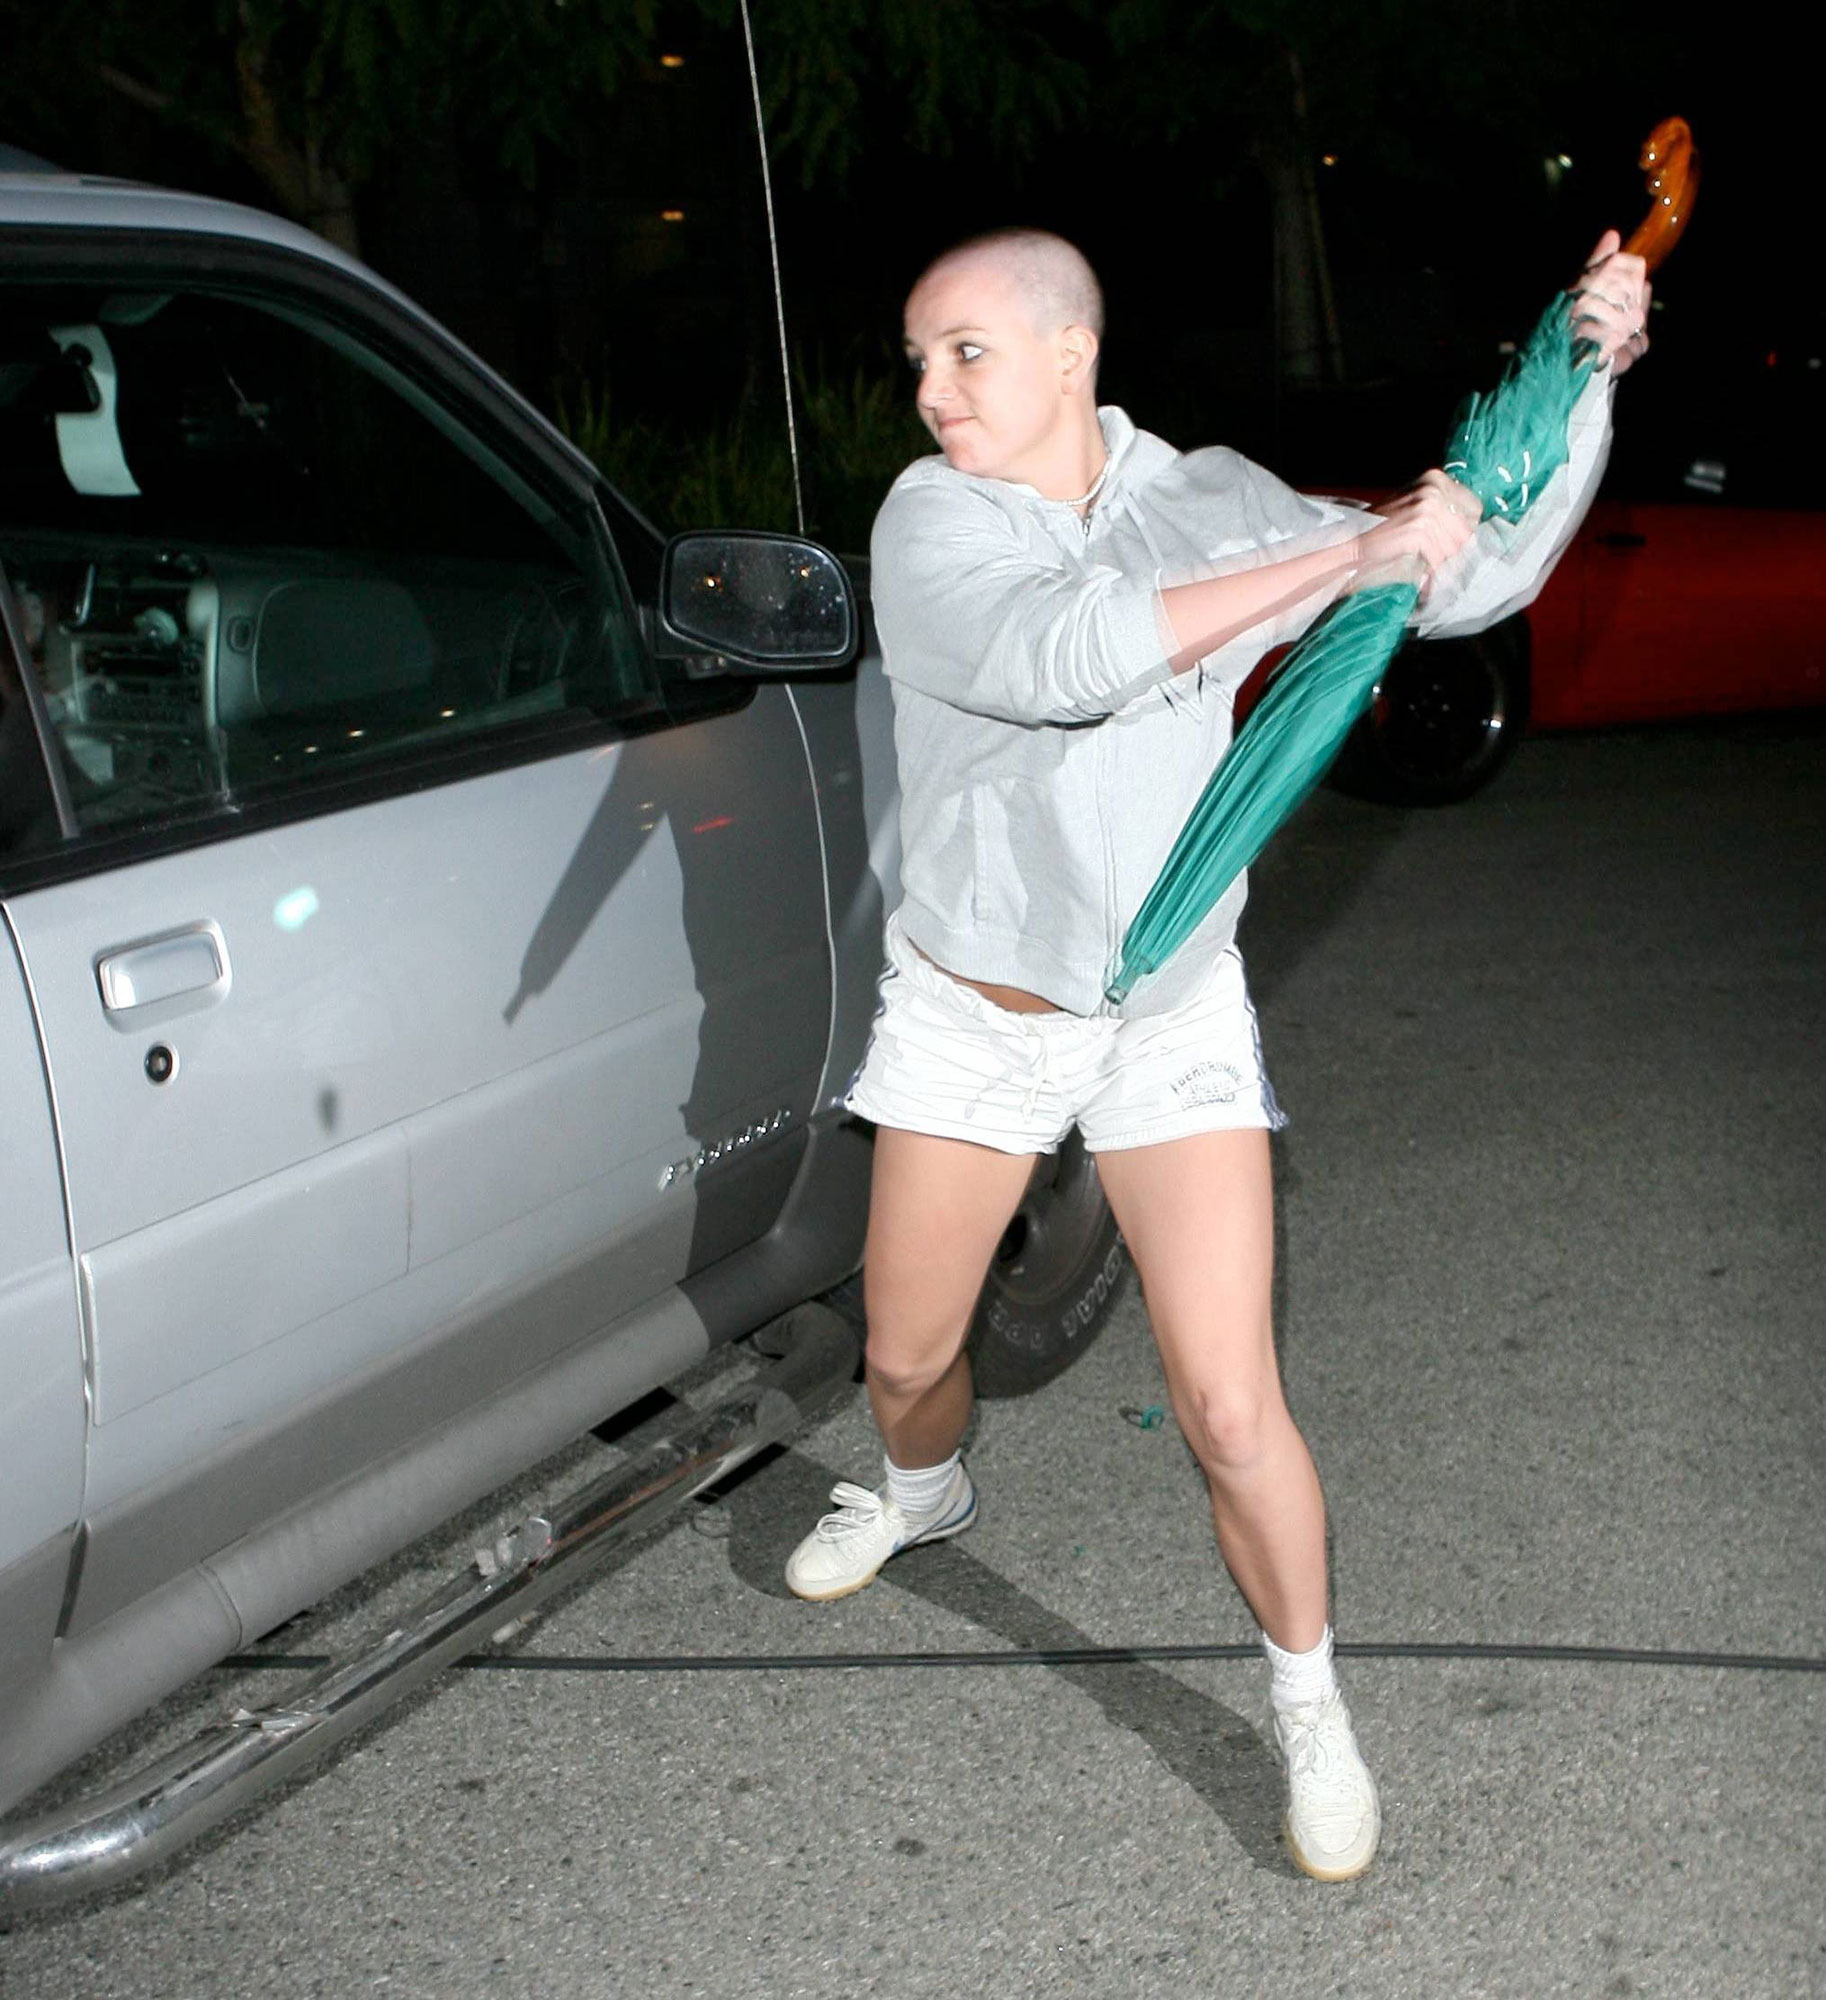 Britney Spears' Ups and Downs gallery - Spears hit a breaking point in 2007 when paparazzi captured her shaving her head at a hair salon and subsequently attacking a photographer's car with an umbrella. A struggle with addiction, an undisclosed mental illness and a bitter custody battle with Federline were reportedly behind her behavior.